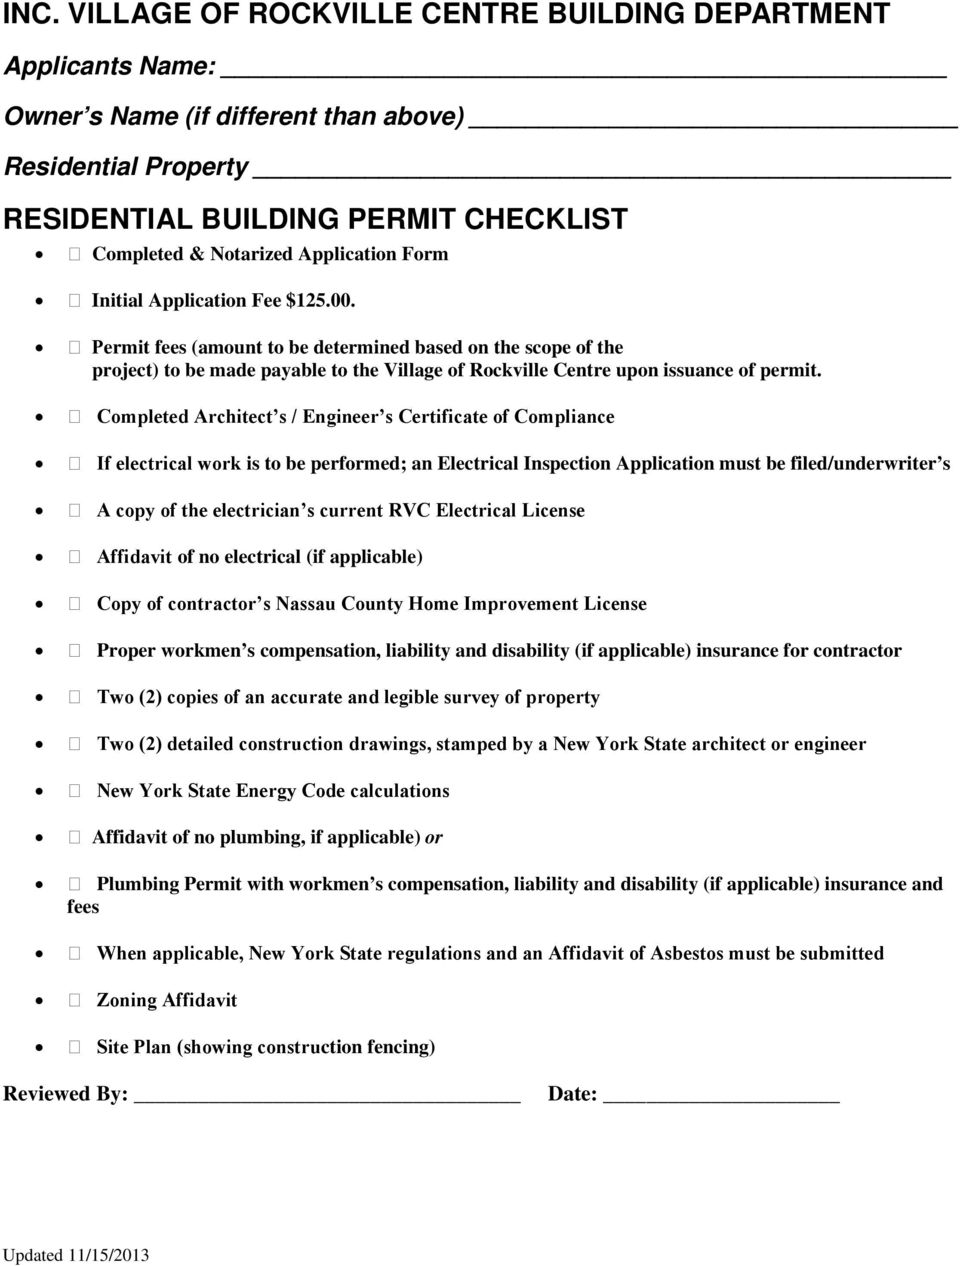 INC  VILLAGE OF ROCKVILLE CENTRE BUILDING DEPARTMENT - PDF